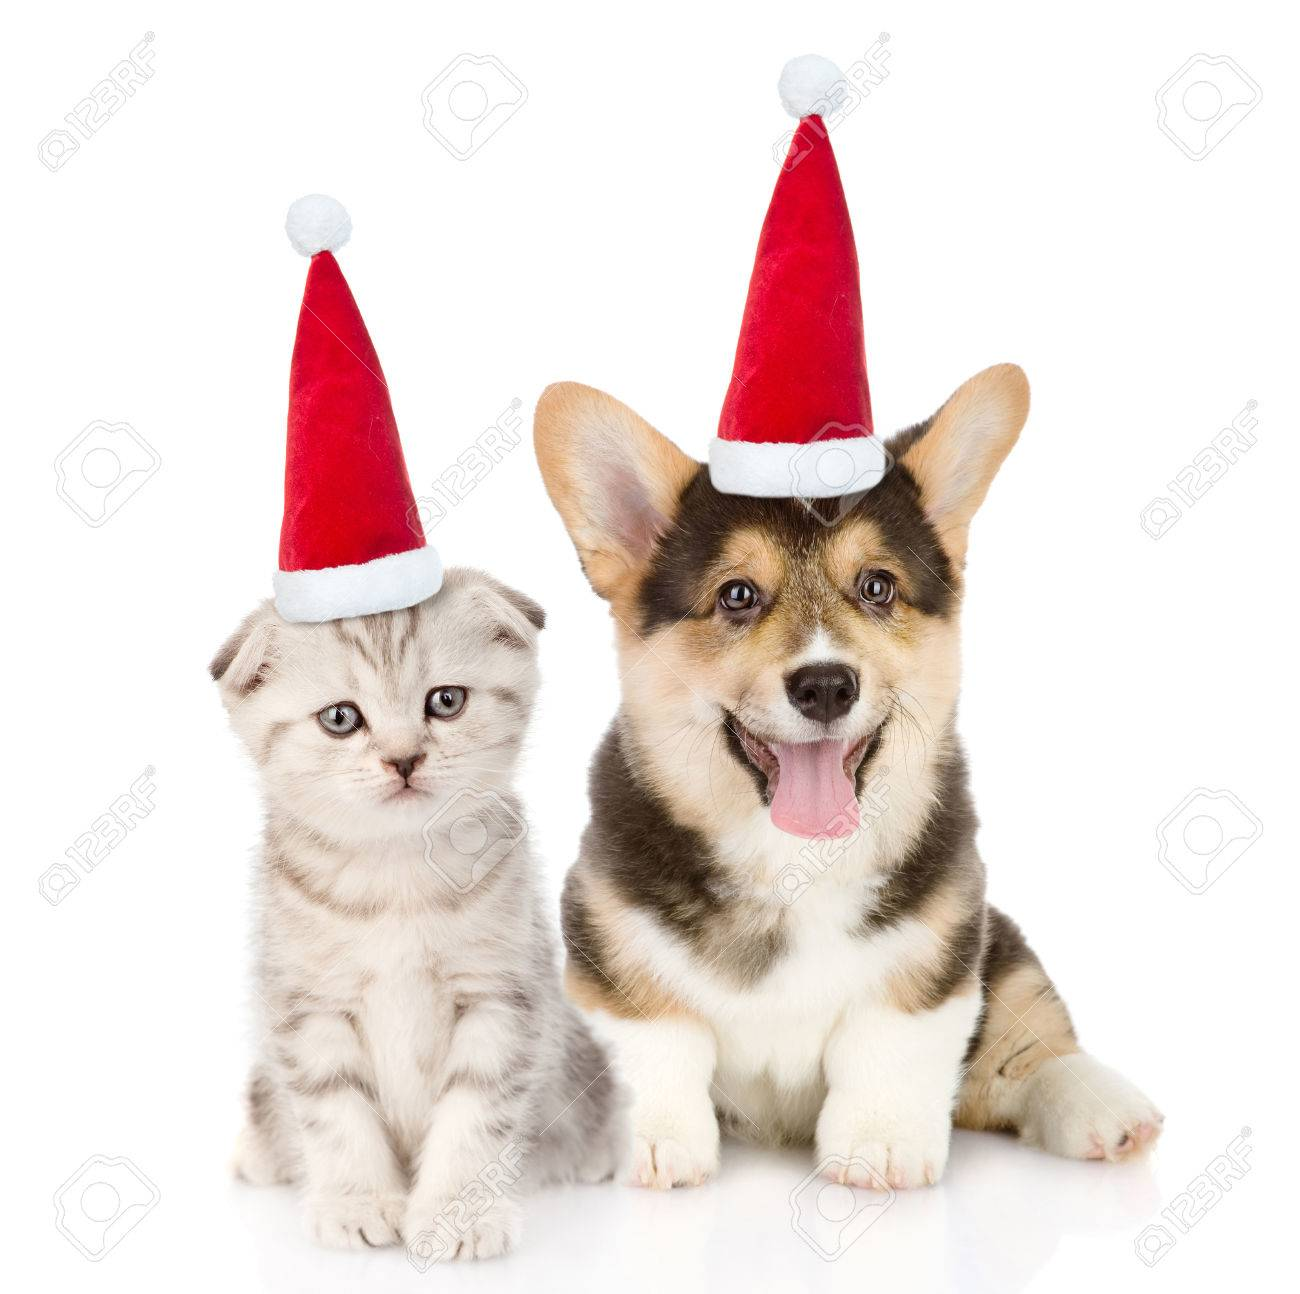 Pembroke Welsh Corgi puppy and kitten in red christmas hats sitting in  front view together. 5df0e161759a